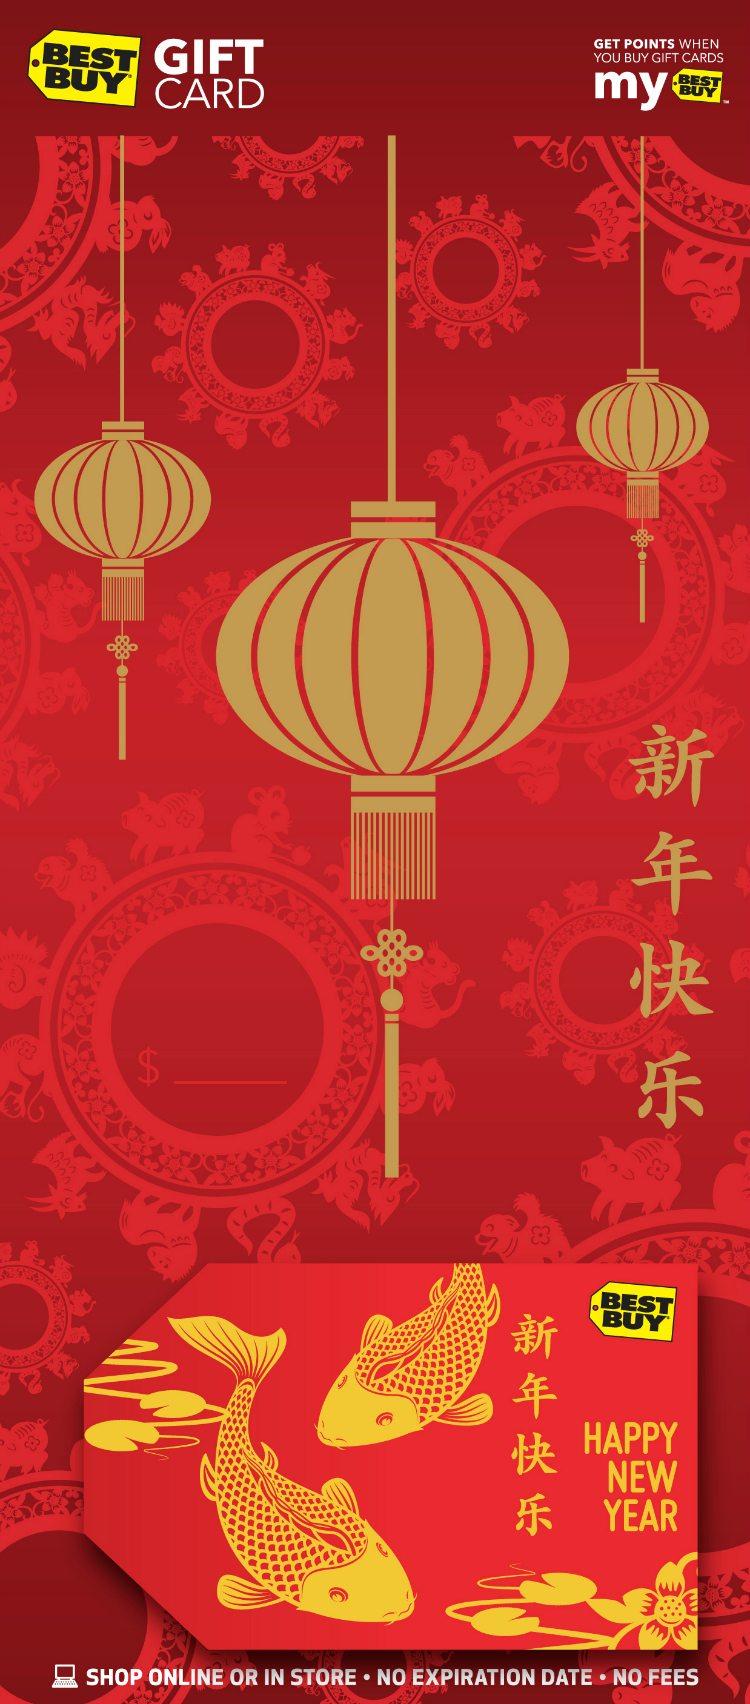 Lunar New Year 2015 Gift Cards Available at Best Buy #bbylunarnewyear  @BestBuy -ad